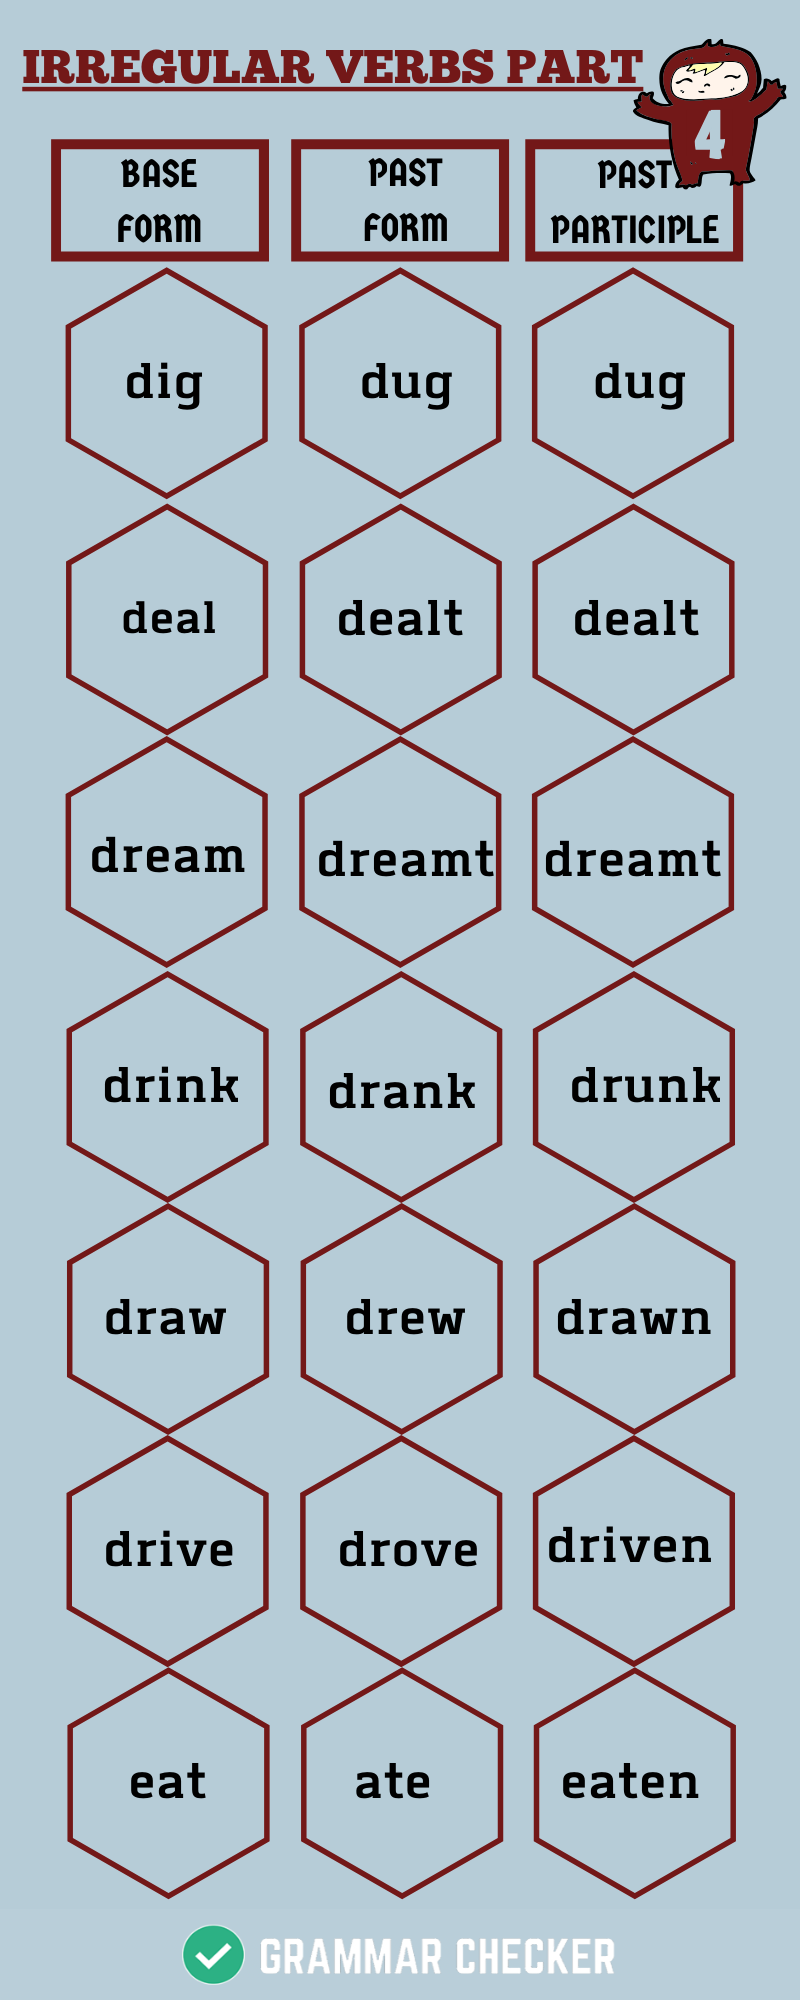 PHRASAL VERBS WITH ASK in 2020 Grammar check, English